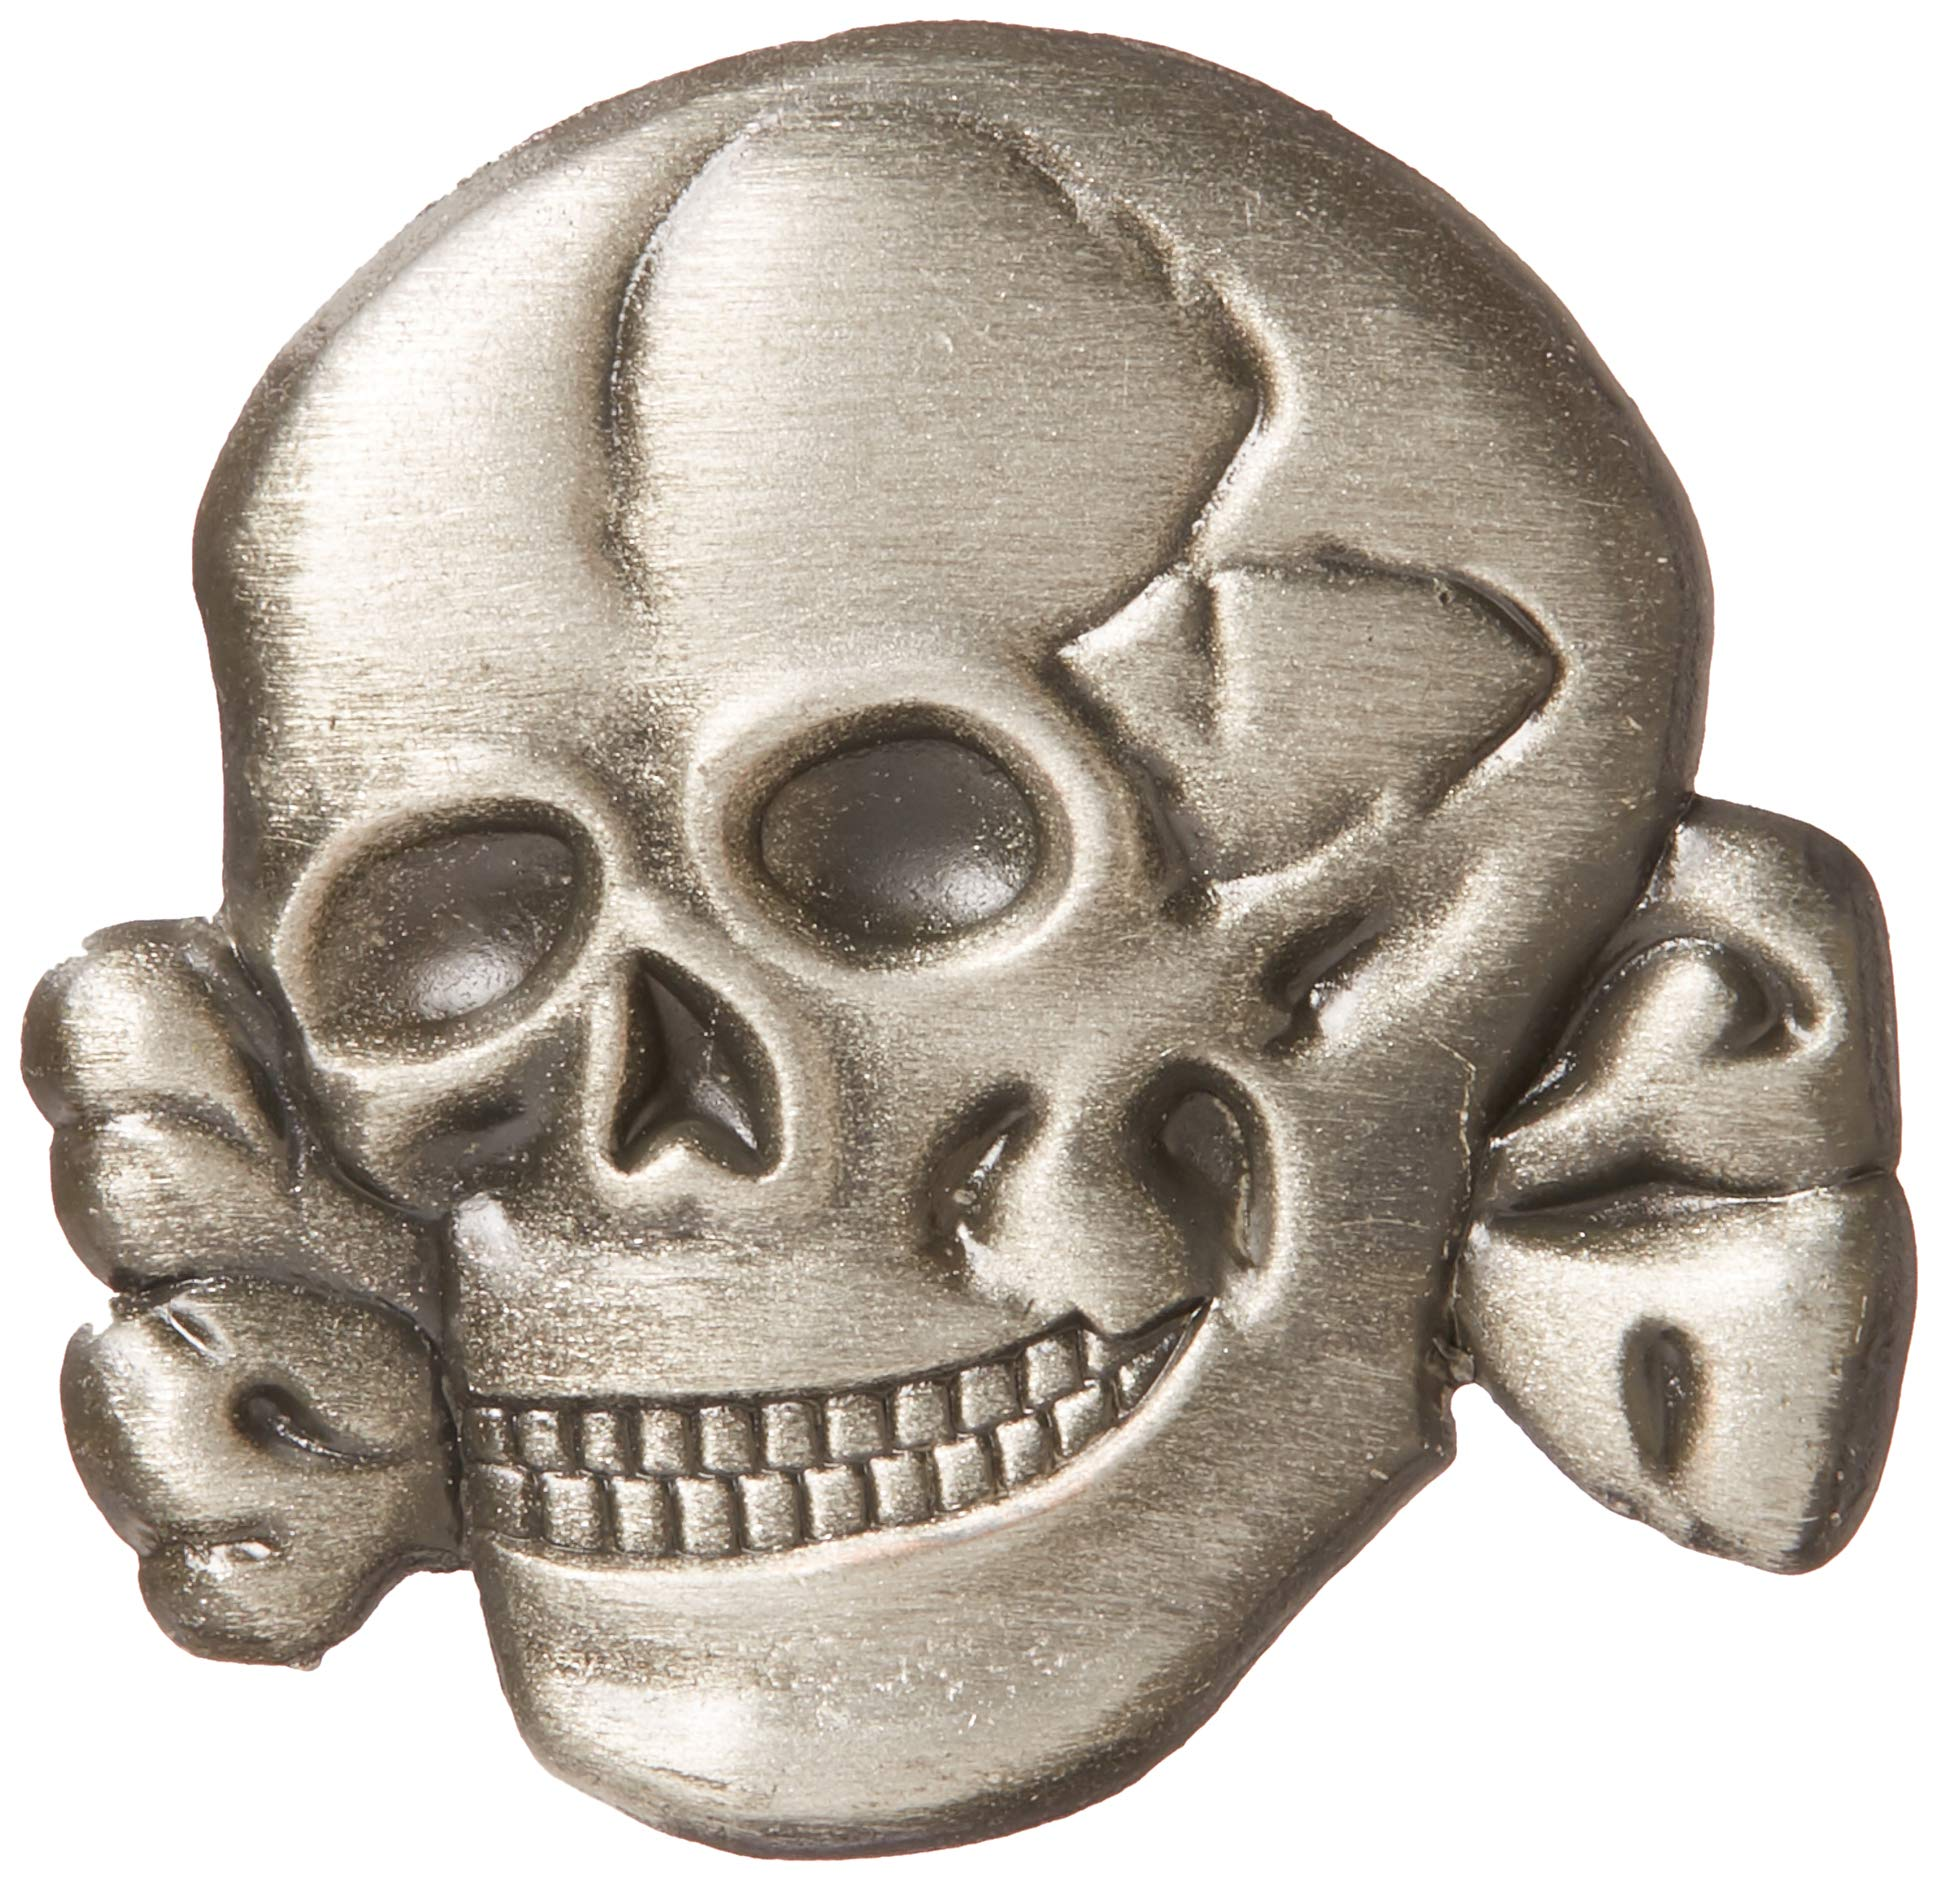 EagleEmblems P64882 Pin-Skull and Bones,Pwt (1'') by EagleEmblems